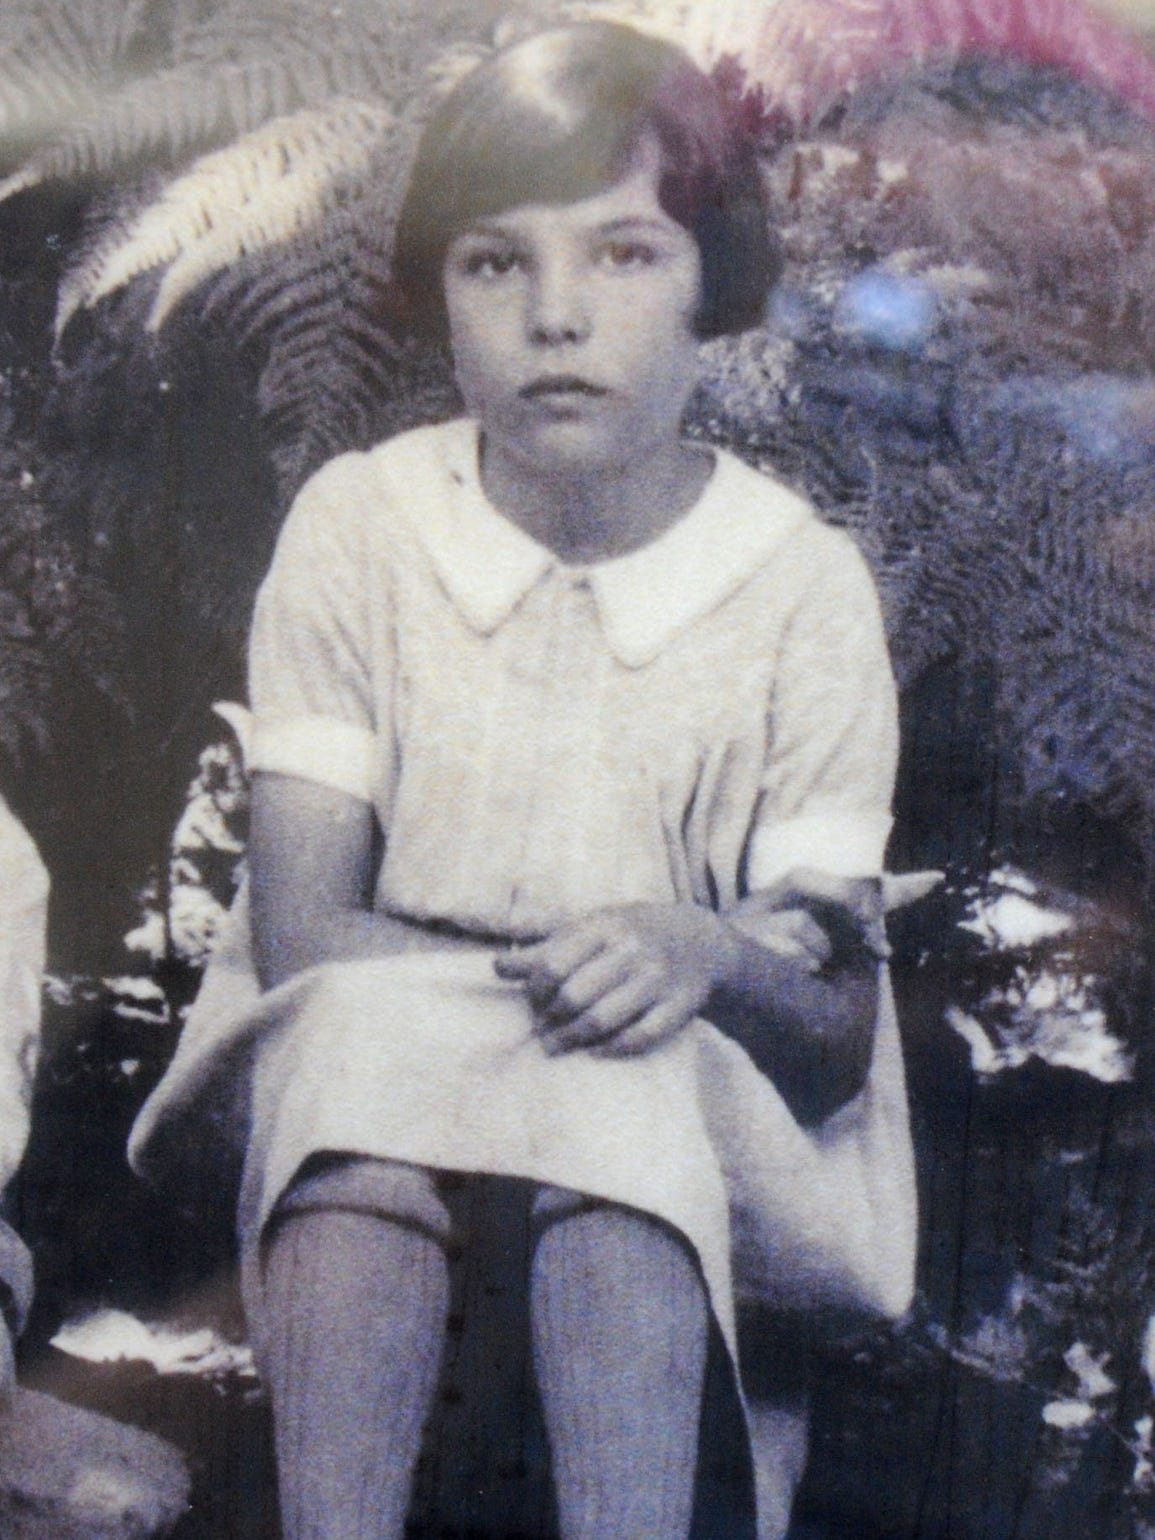 This picture shows Joanna Bard Newton as a child. She